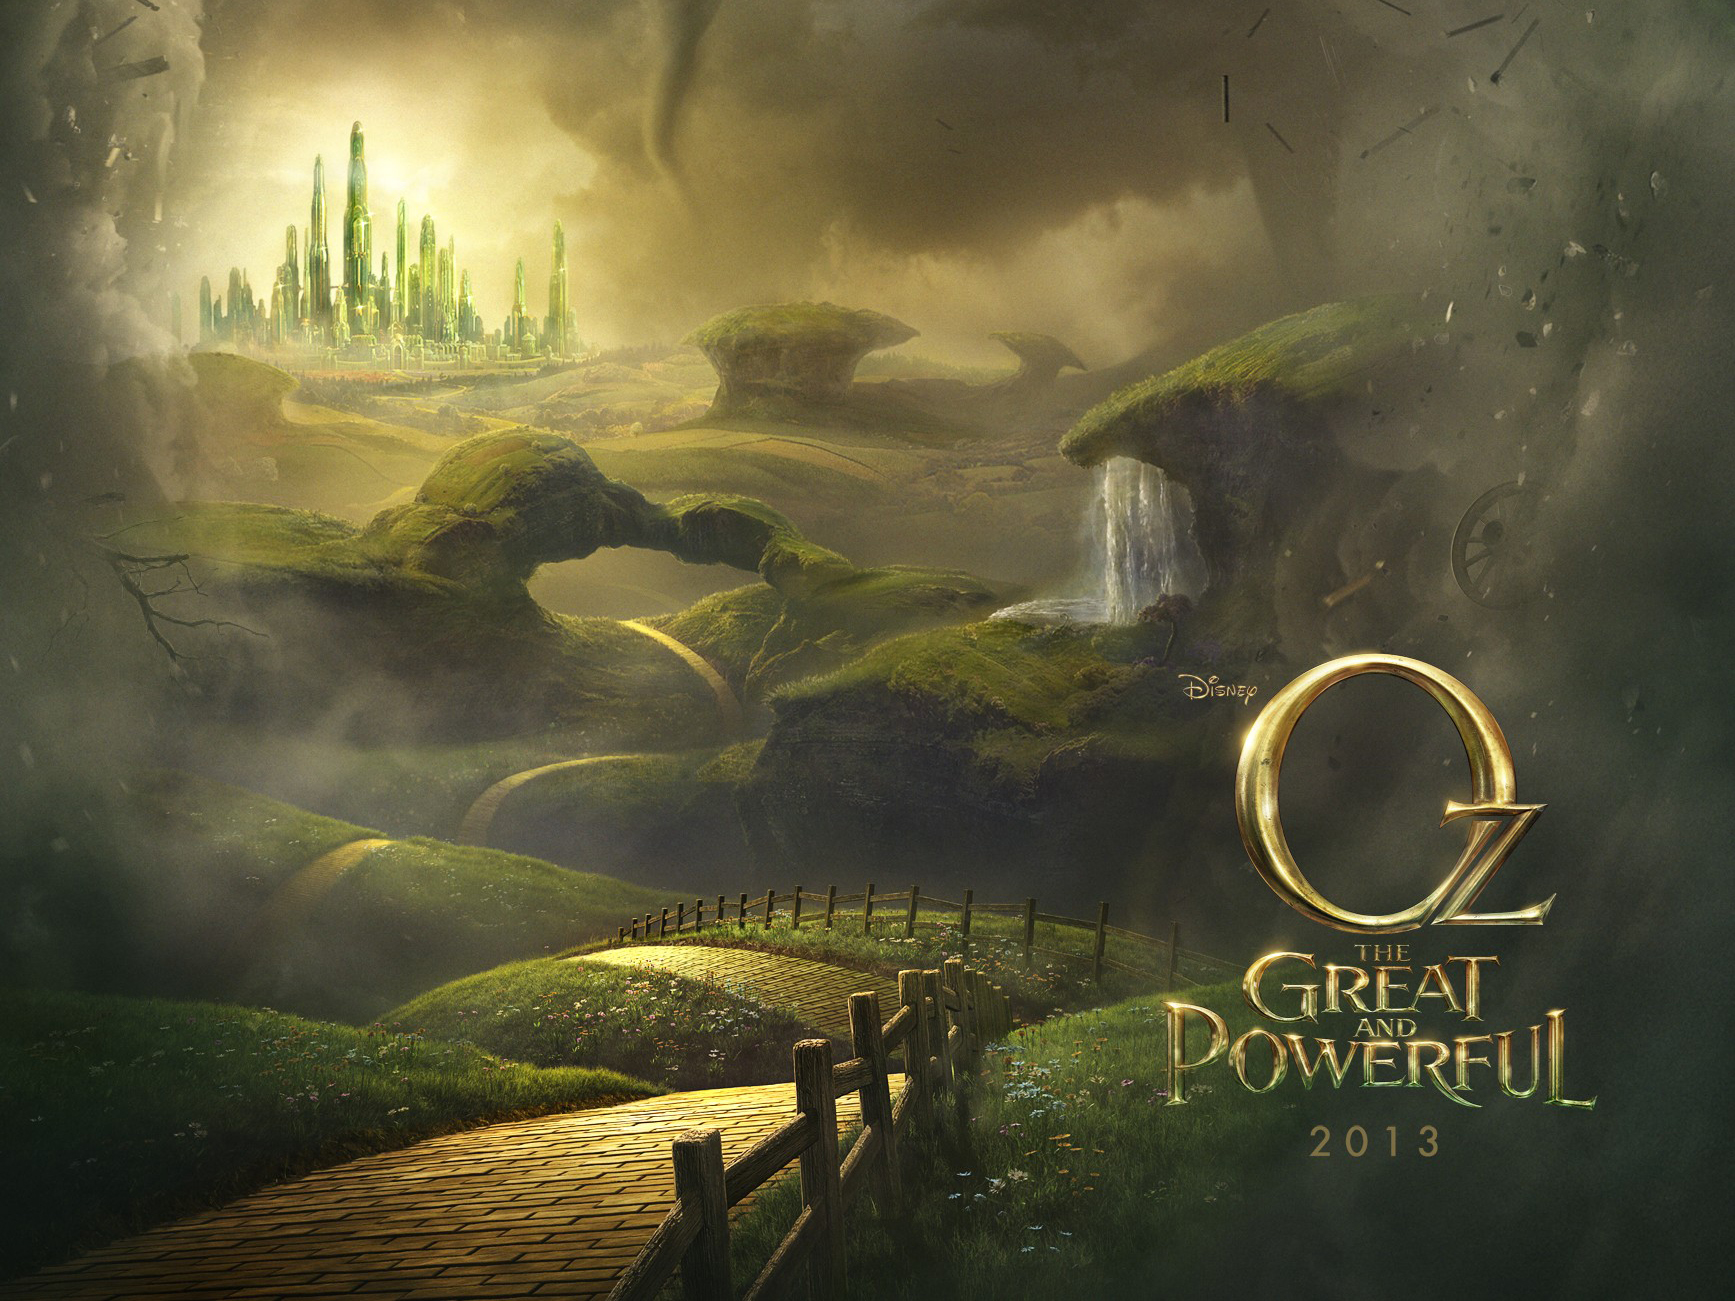 Oz The Great and Powerful wallpapers 1735×1301-001